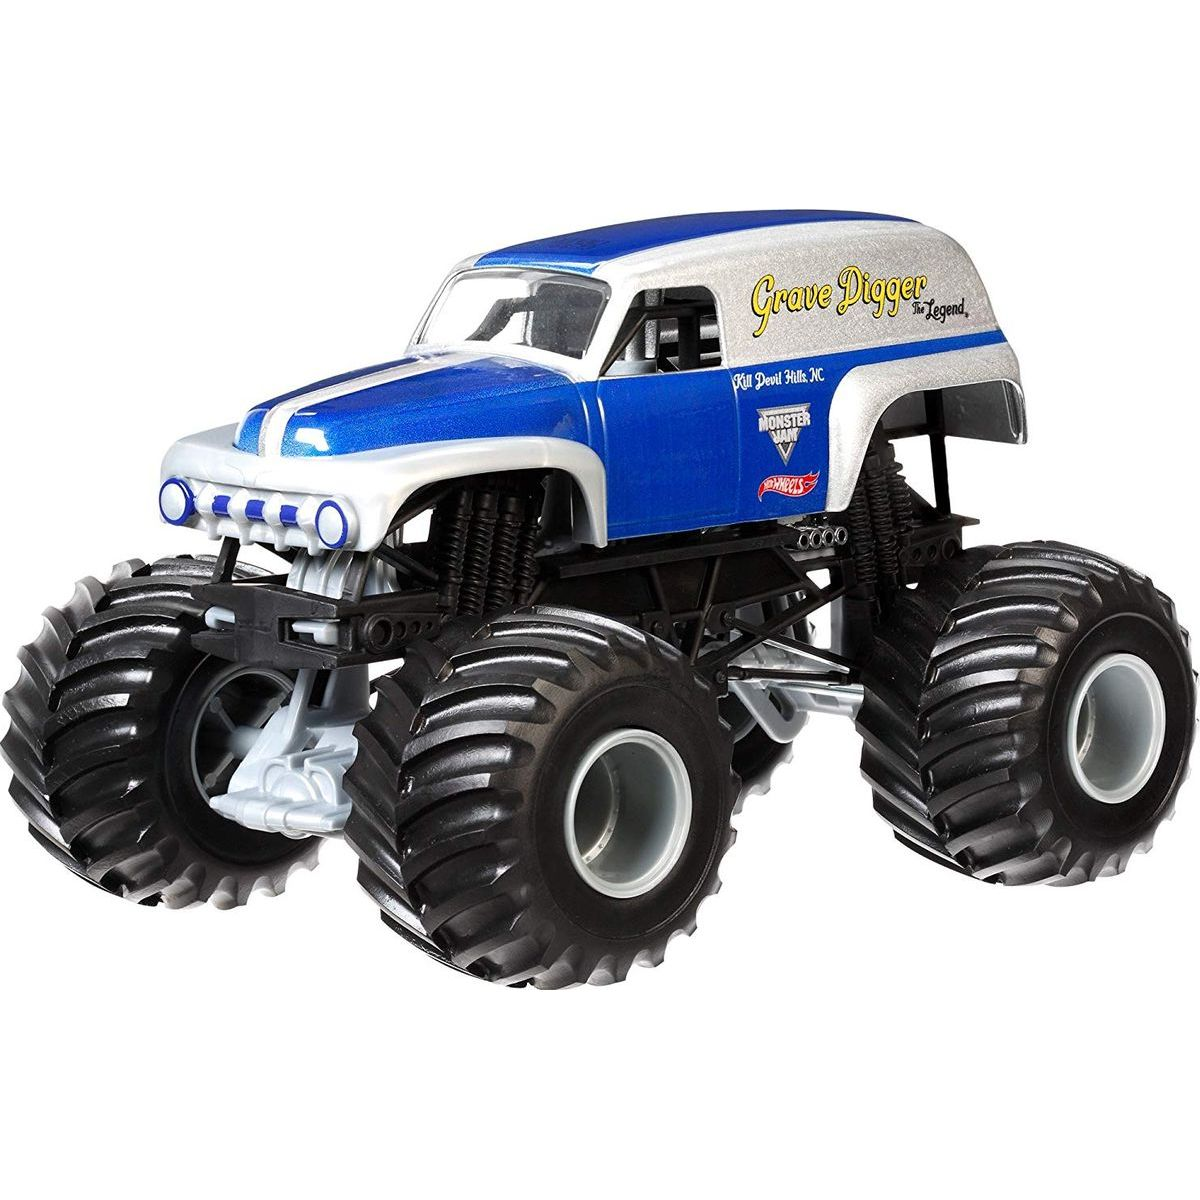 Monster Jam Sběratelská Die-Cast auta 1:64 Grave Digger the legend